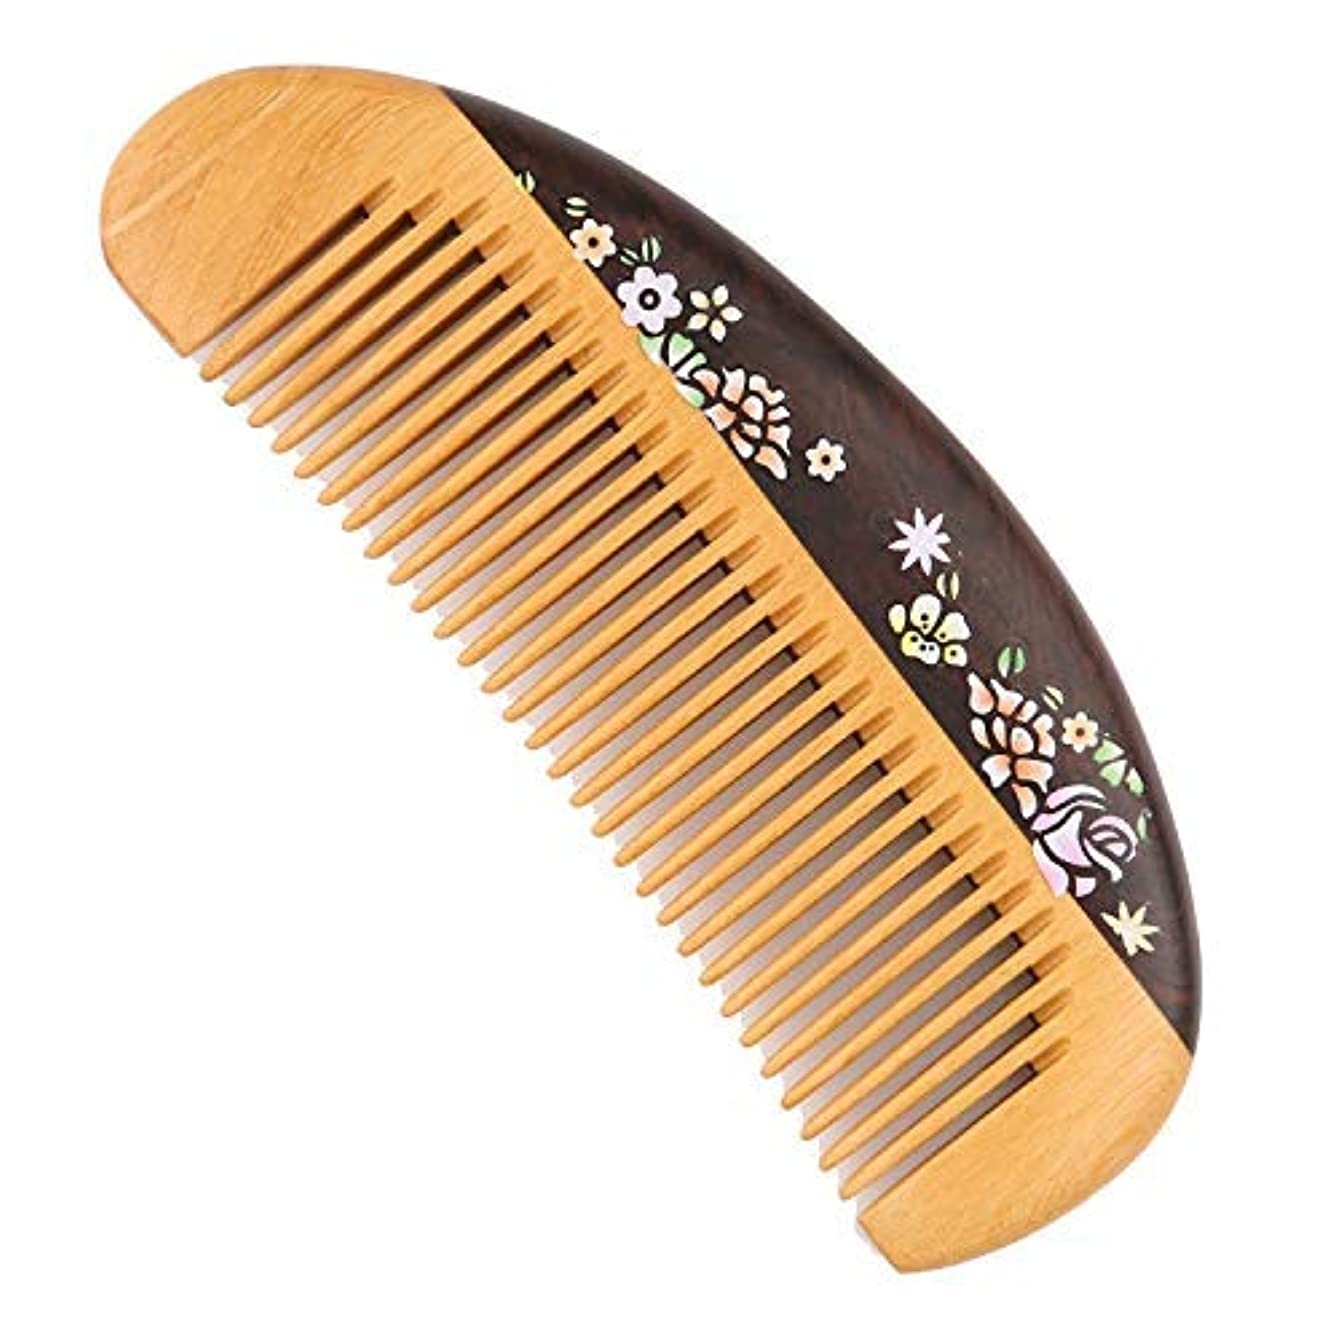 狂気ファッション市の中心部Fine Tooth Wooden Comb [Gift Box] -LilyComb No Static Pocket Wood Comb for Girl and Women- Birthday Anniversary Gift for Daughter Wife Girlfriend Friends Family Member [並行輸入品]